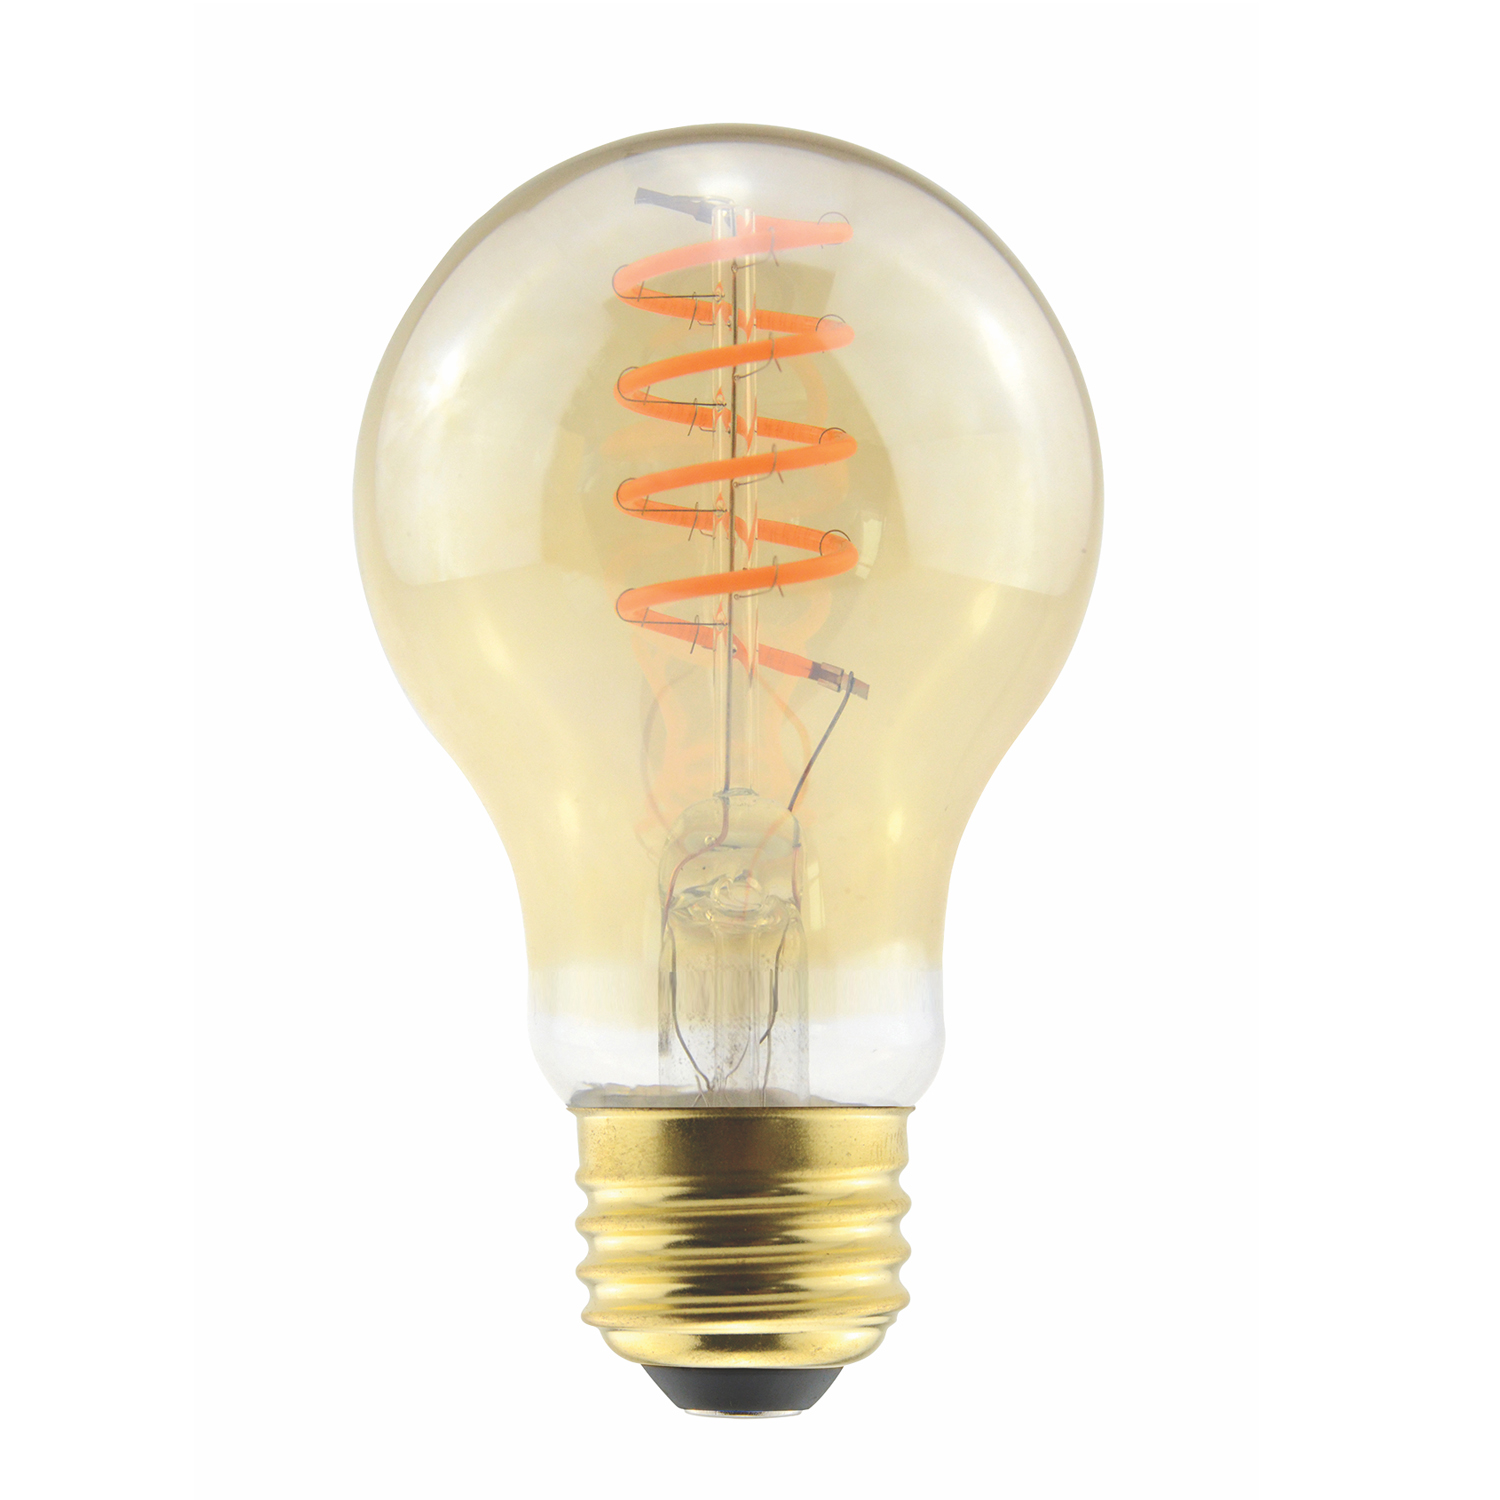 A19AMB6ANT/820/CF/LED2 85078 A19 120V 6.5W Curved Filament 2000K E26 Amber ProLED